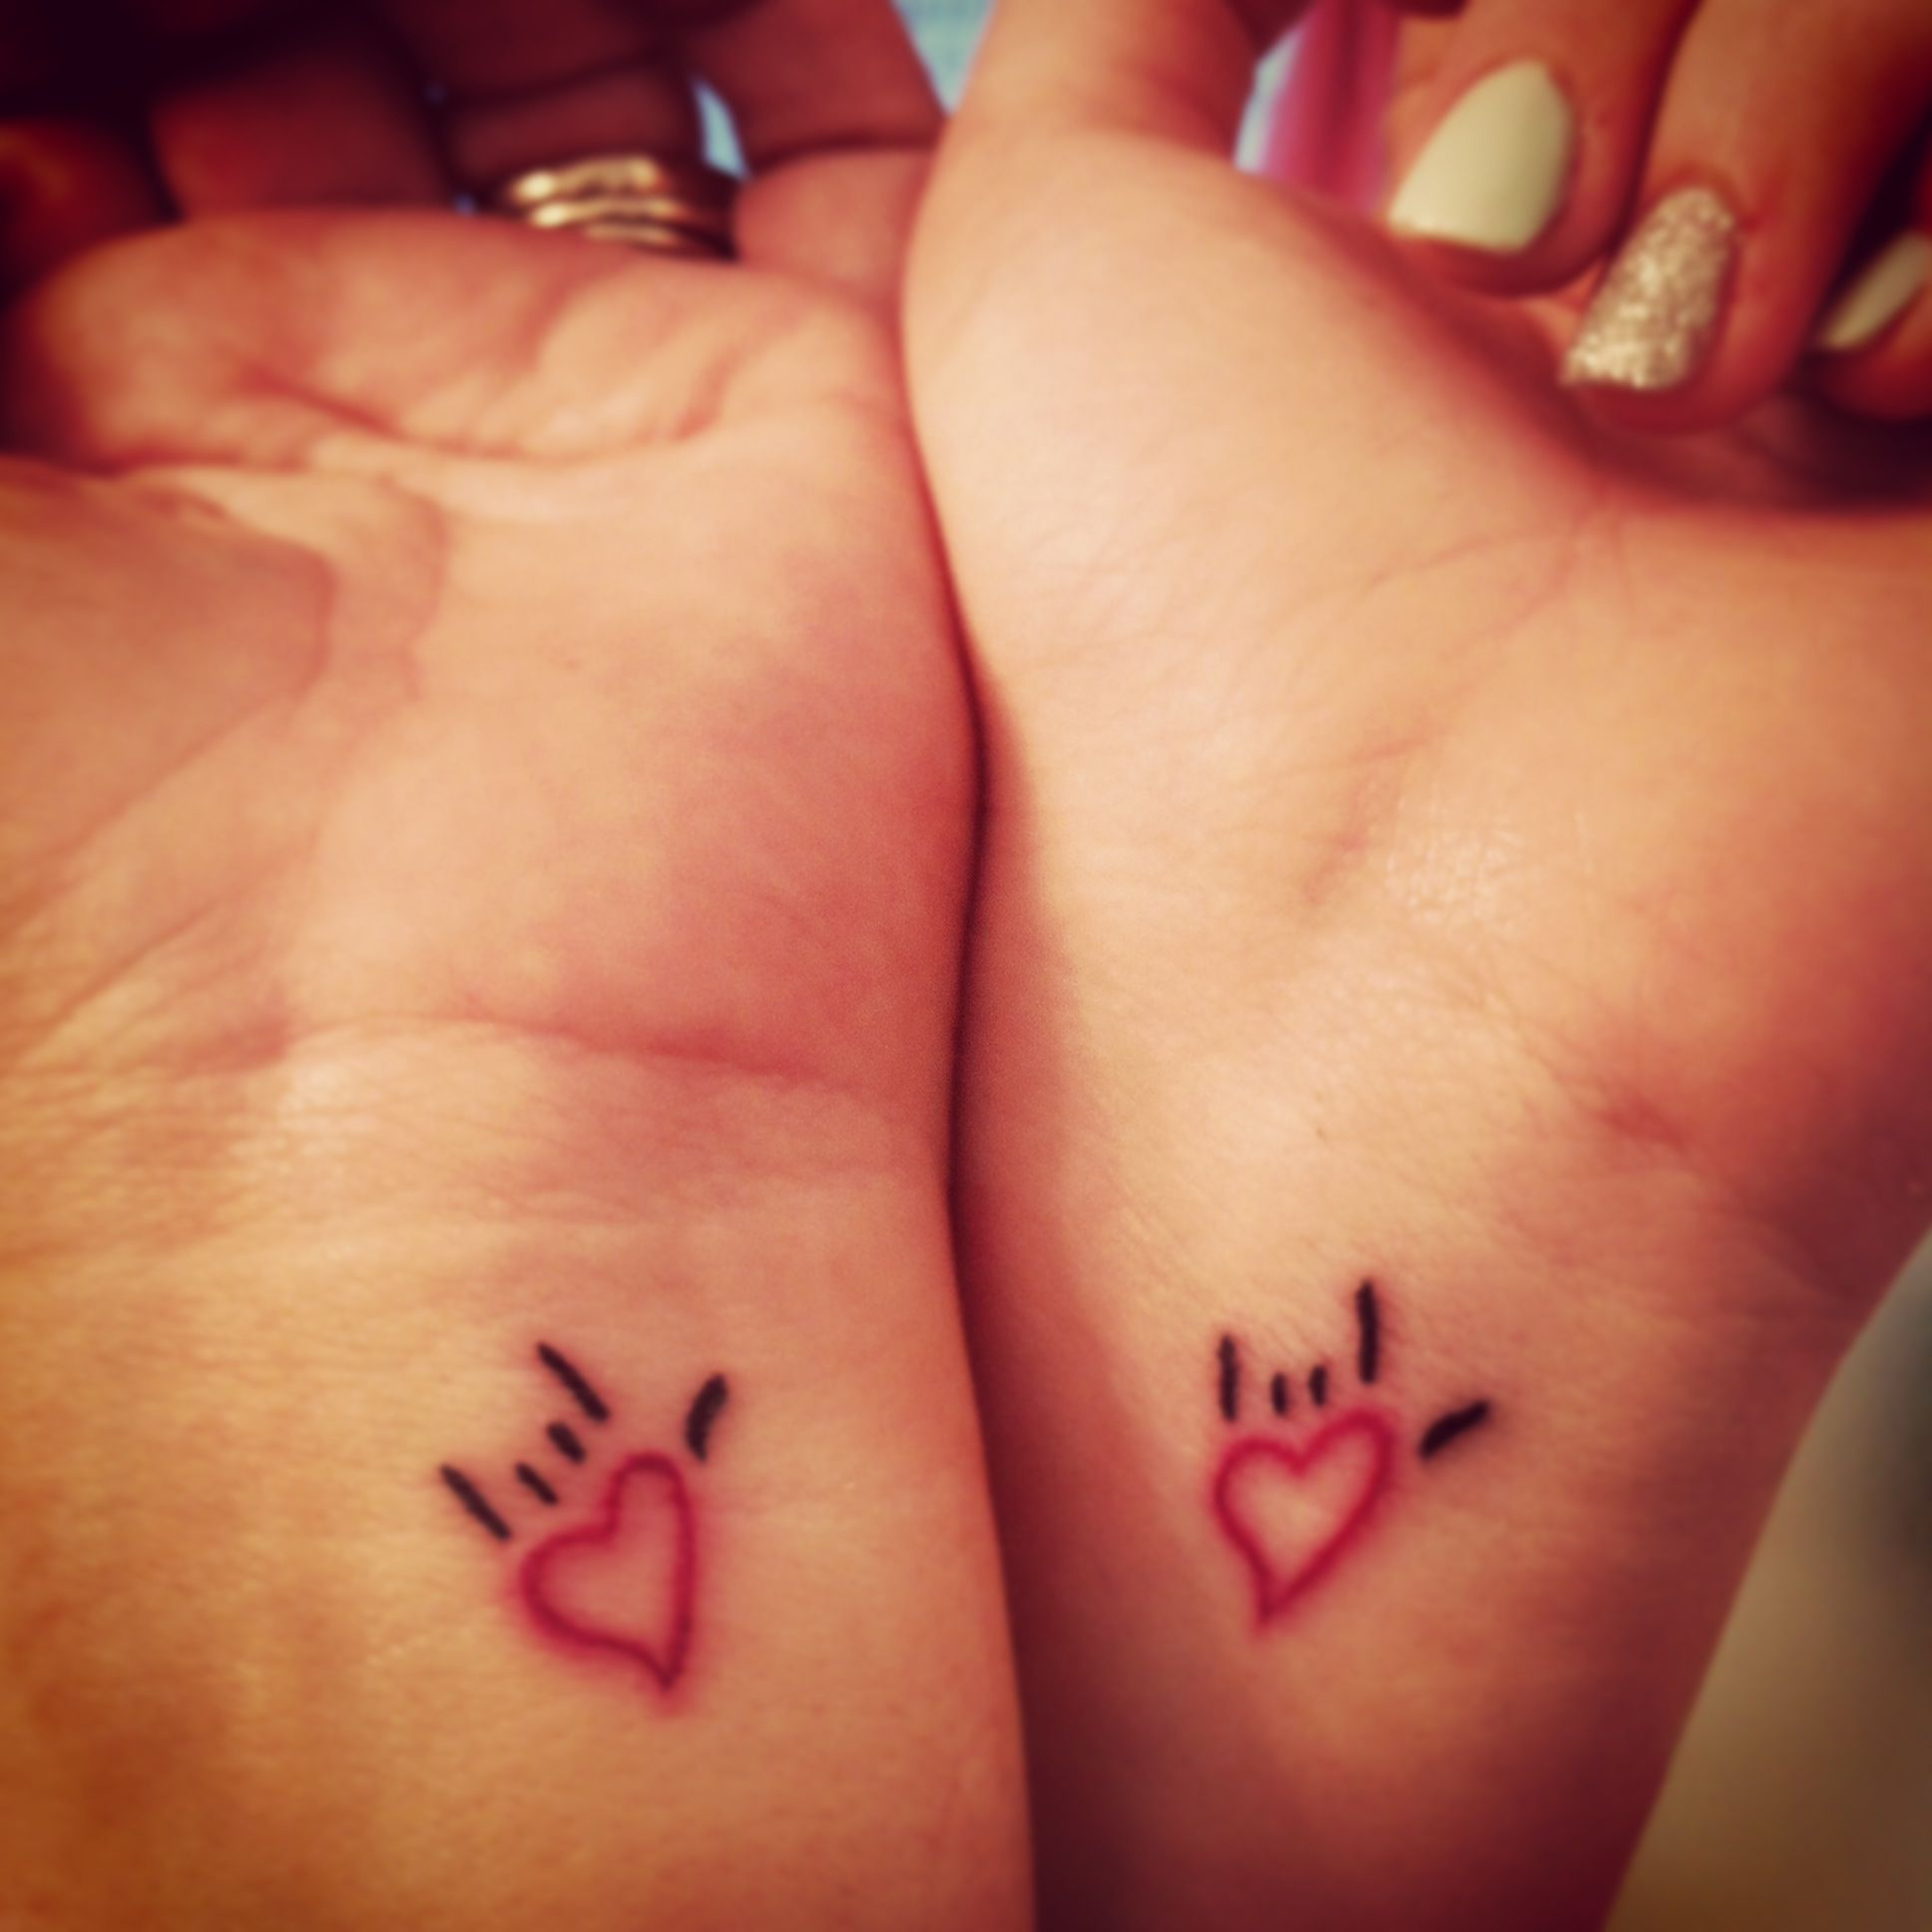 Momma and I got matching tattoos